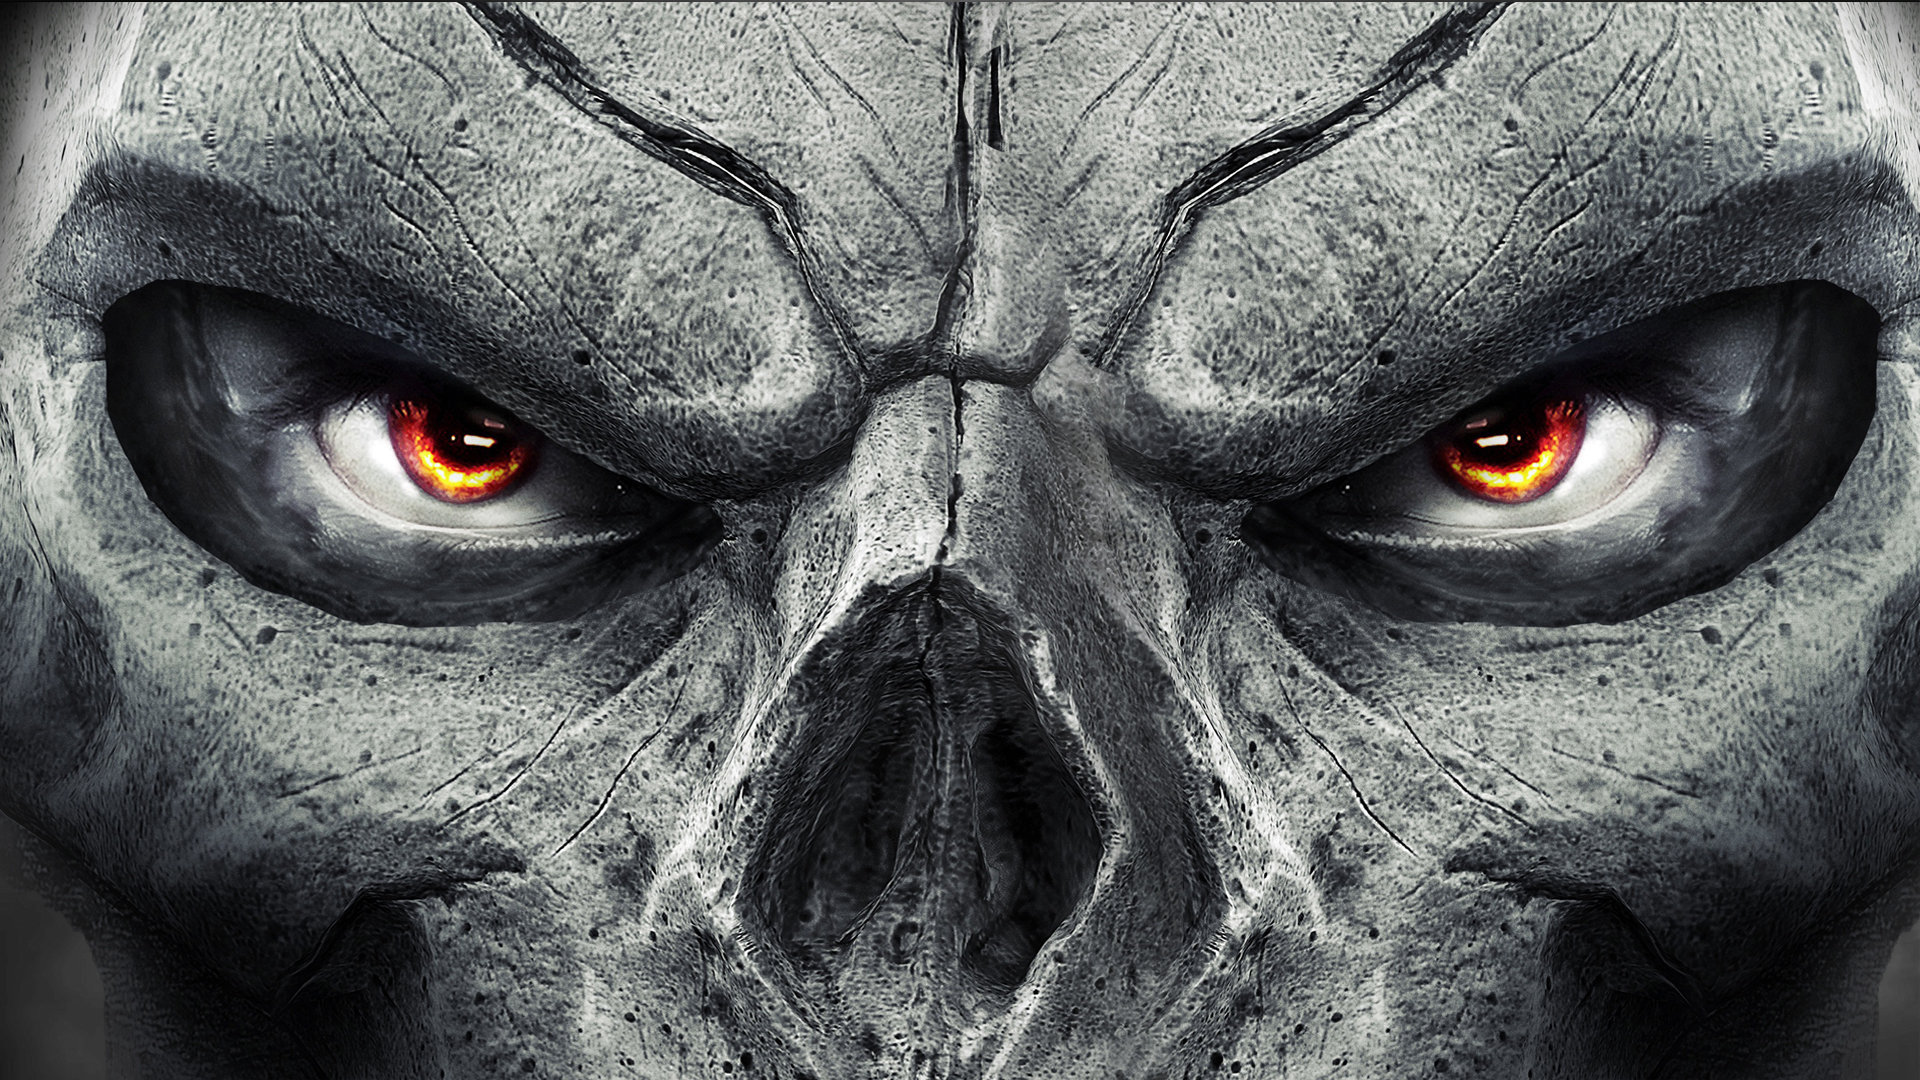 Darksiders Video Game Wallpaper 19201080 1920x1080